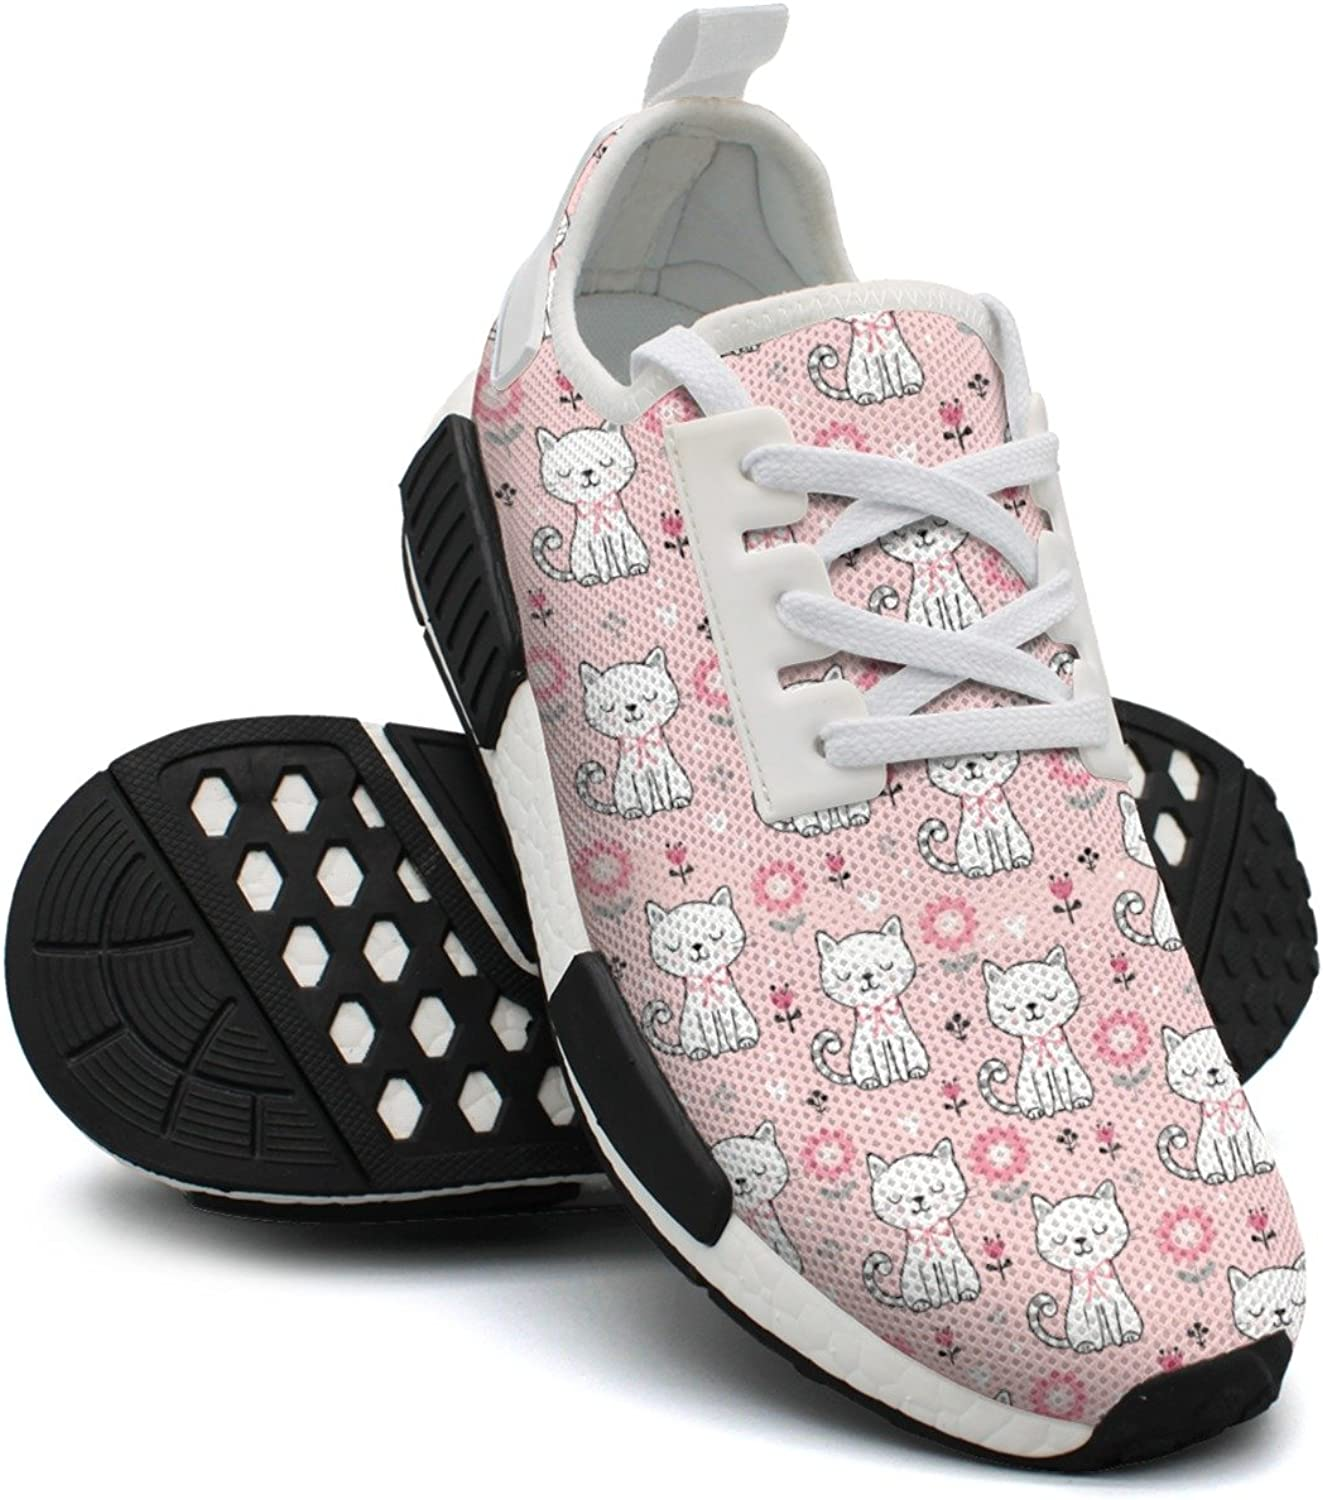 Ktyyuwwww Womens Ladies colorful Top Cute Cats Flowers Cool Sports Running shoes